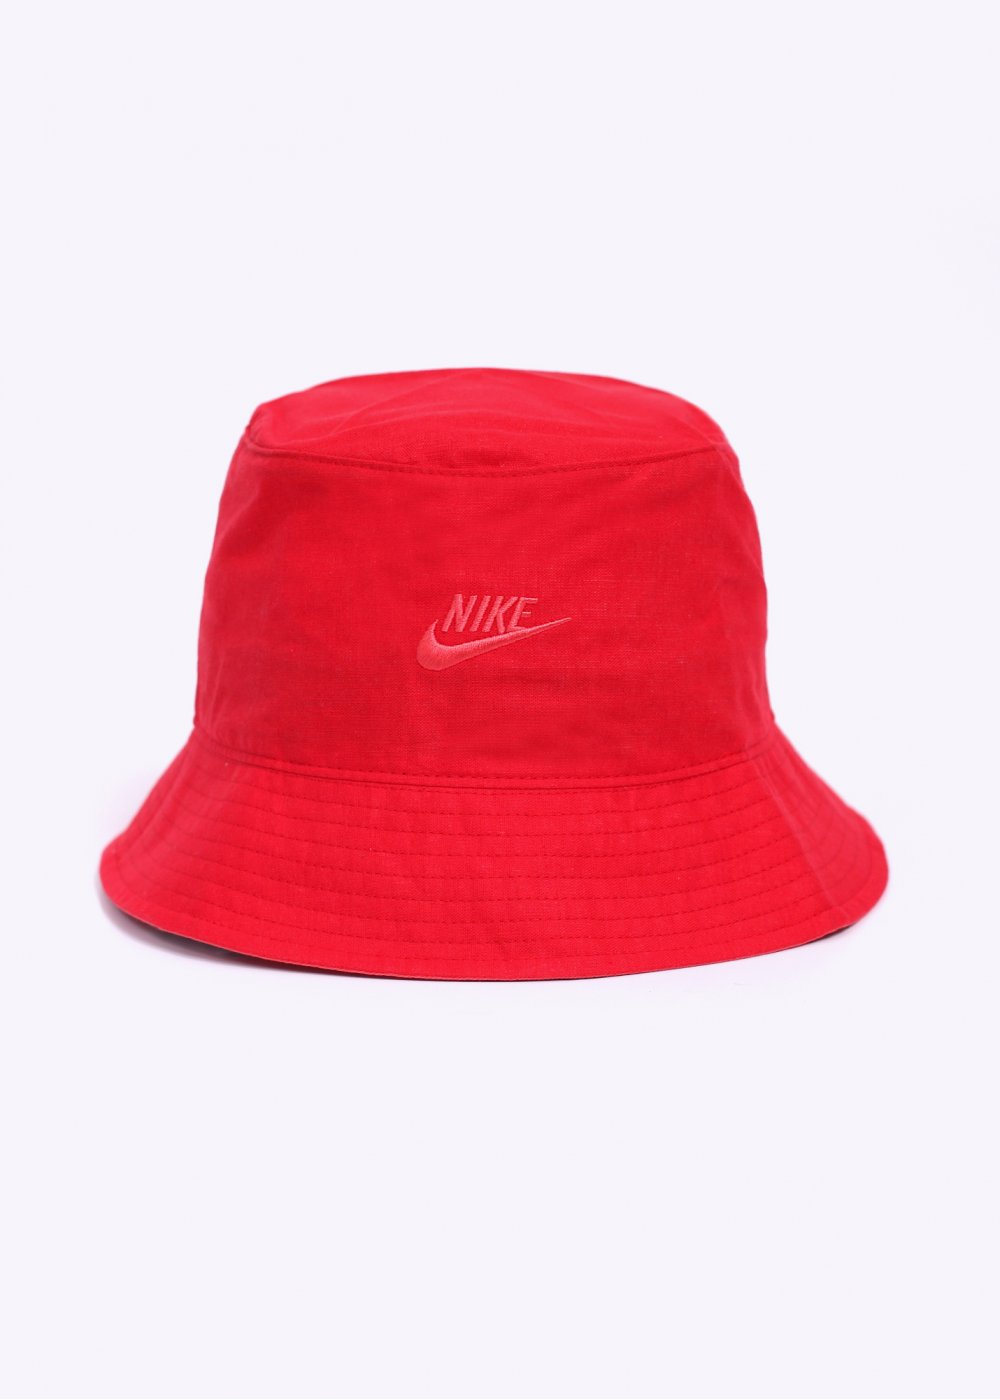 Nike Logo Bucket Hat - Red 2a601402293